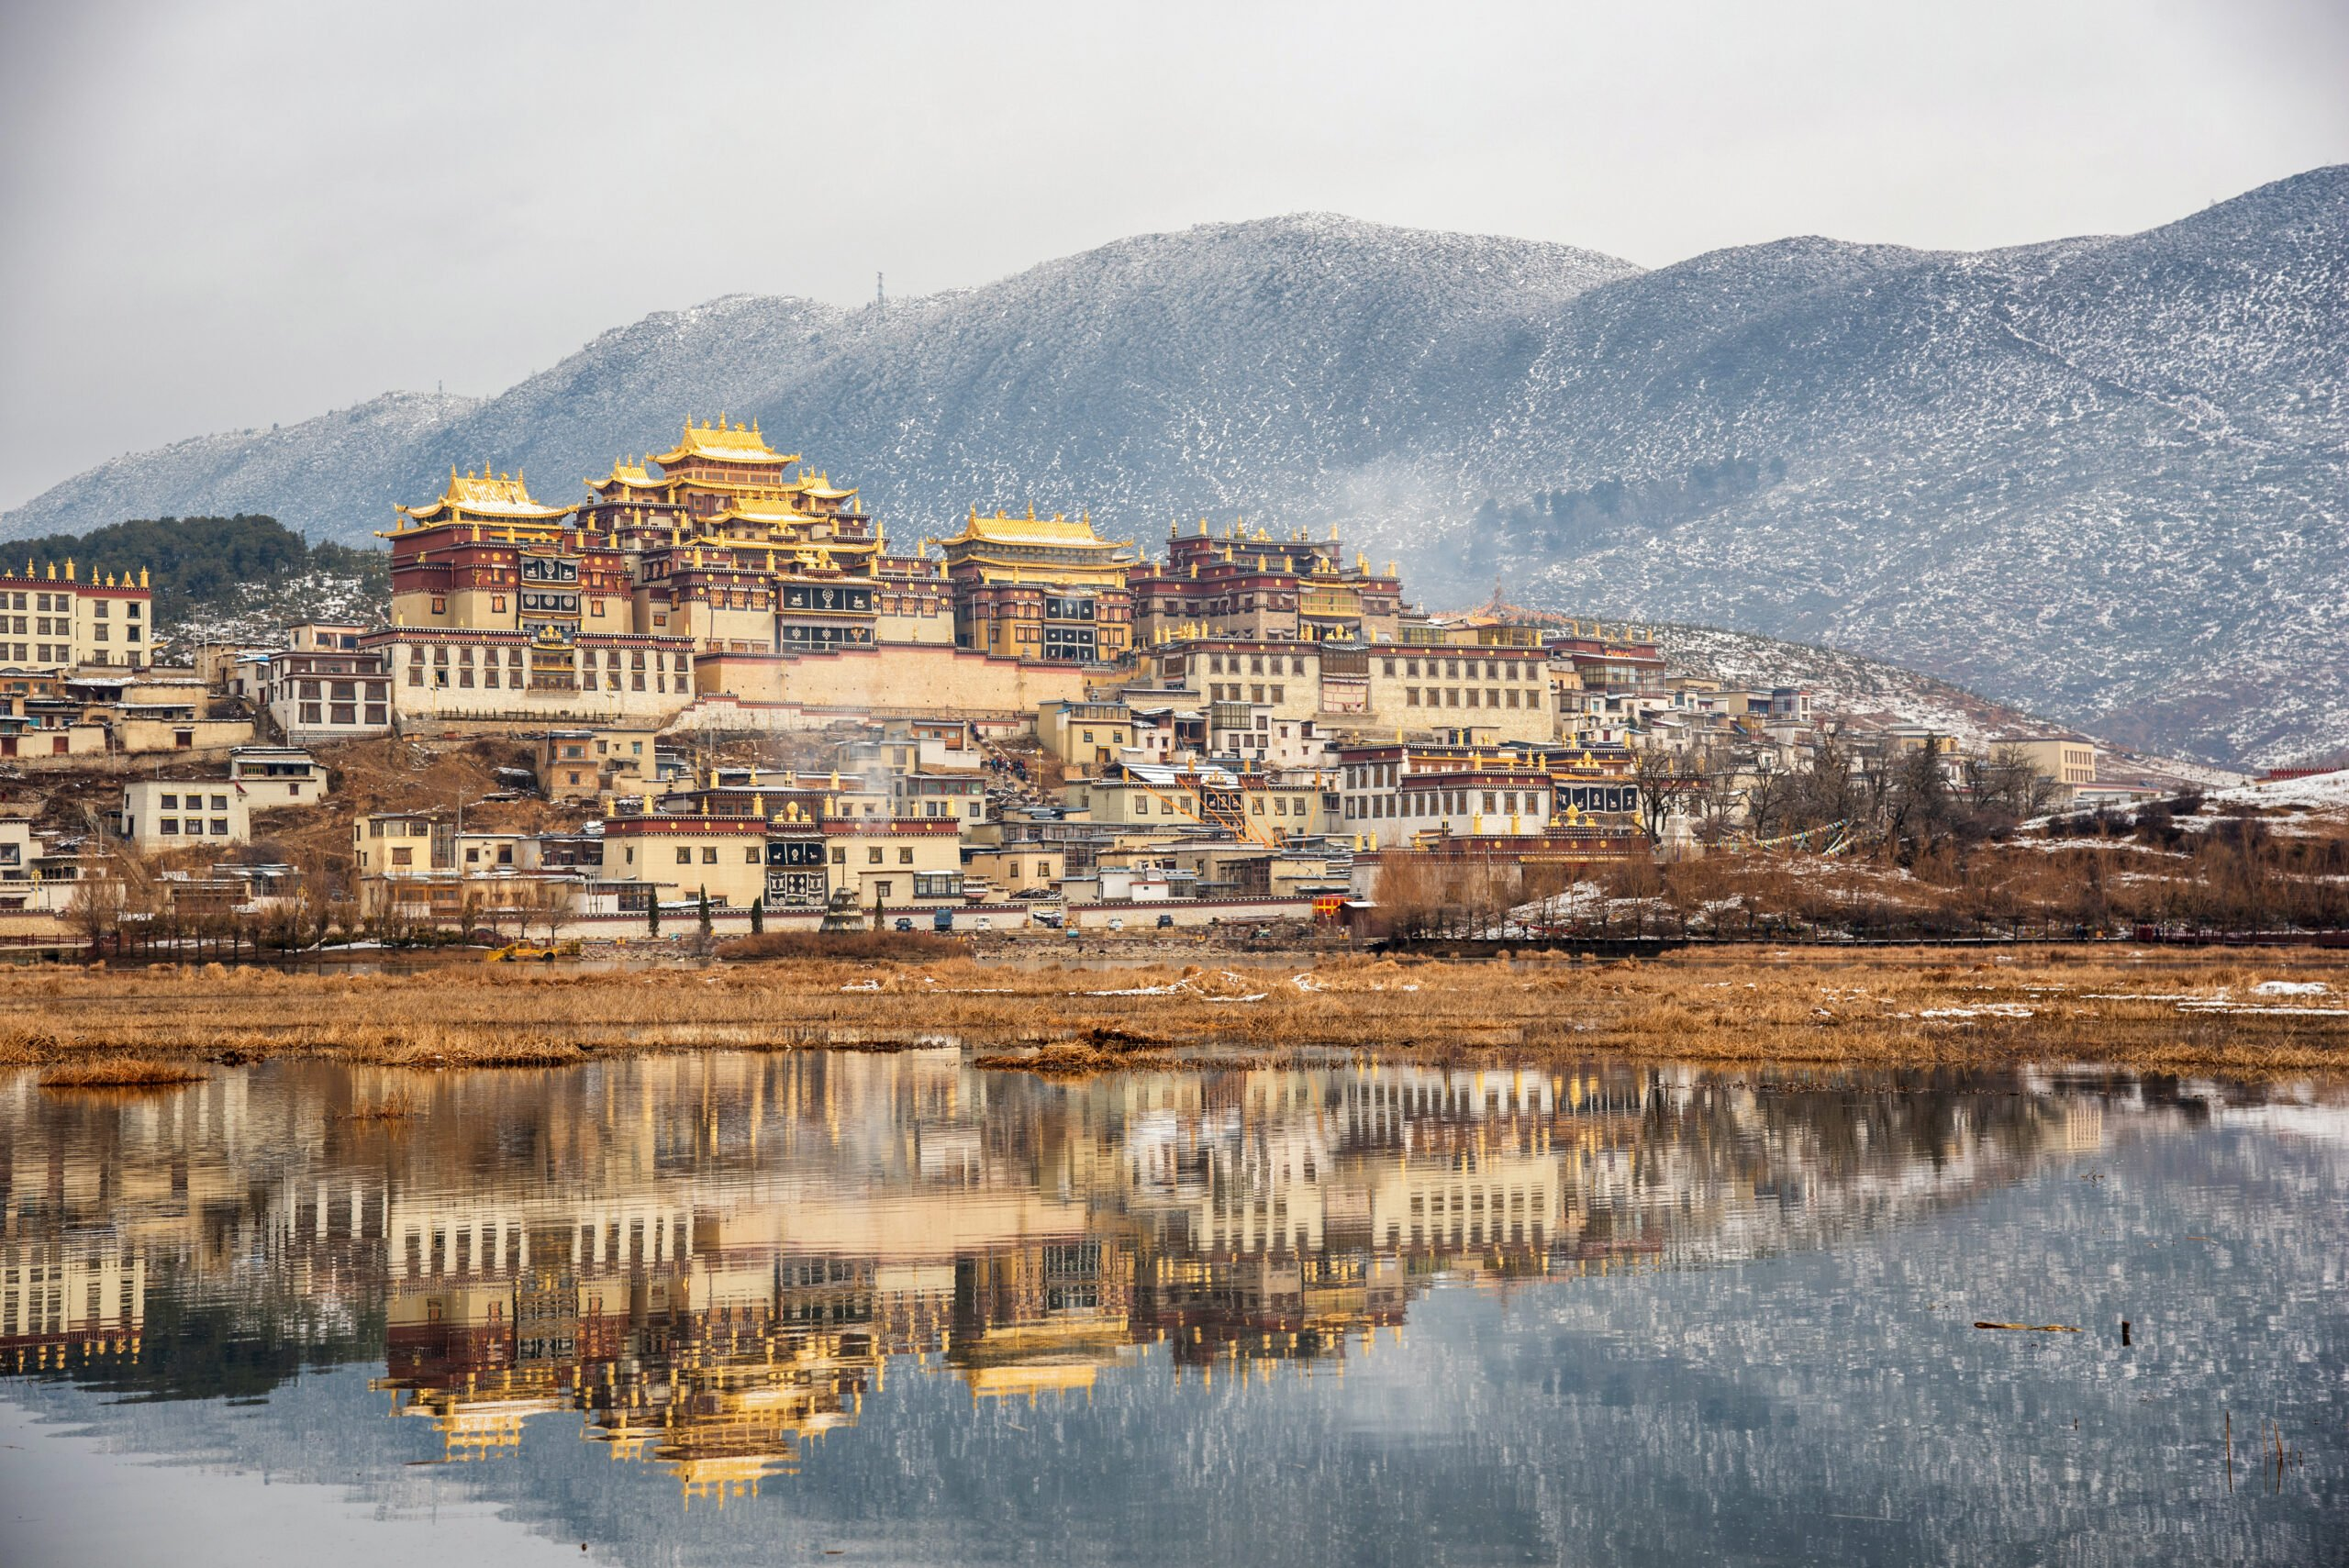 Discover The Amazing City Of Shangri-la In Our 8 Day Wild Yunnan Package